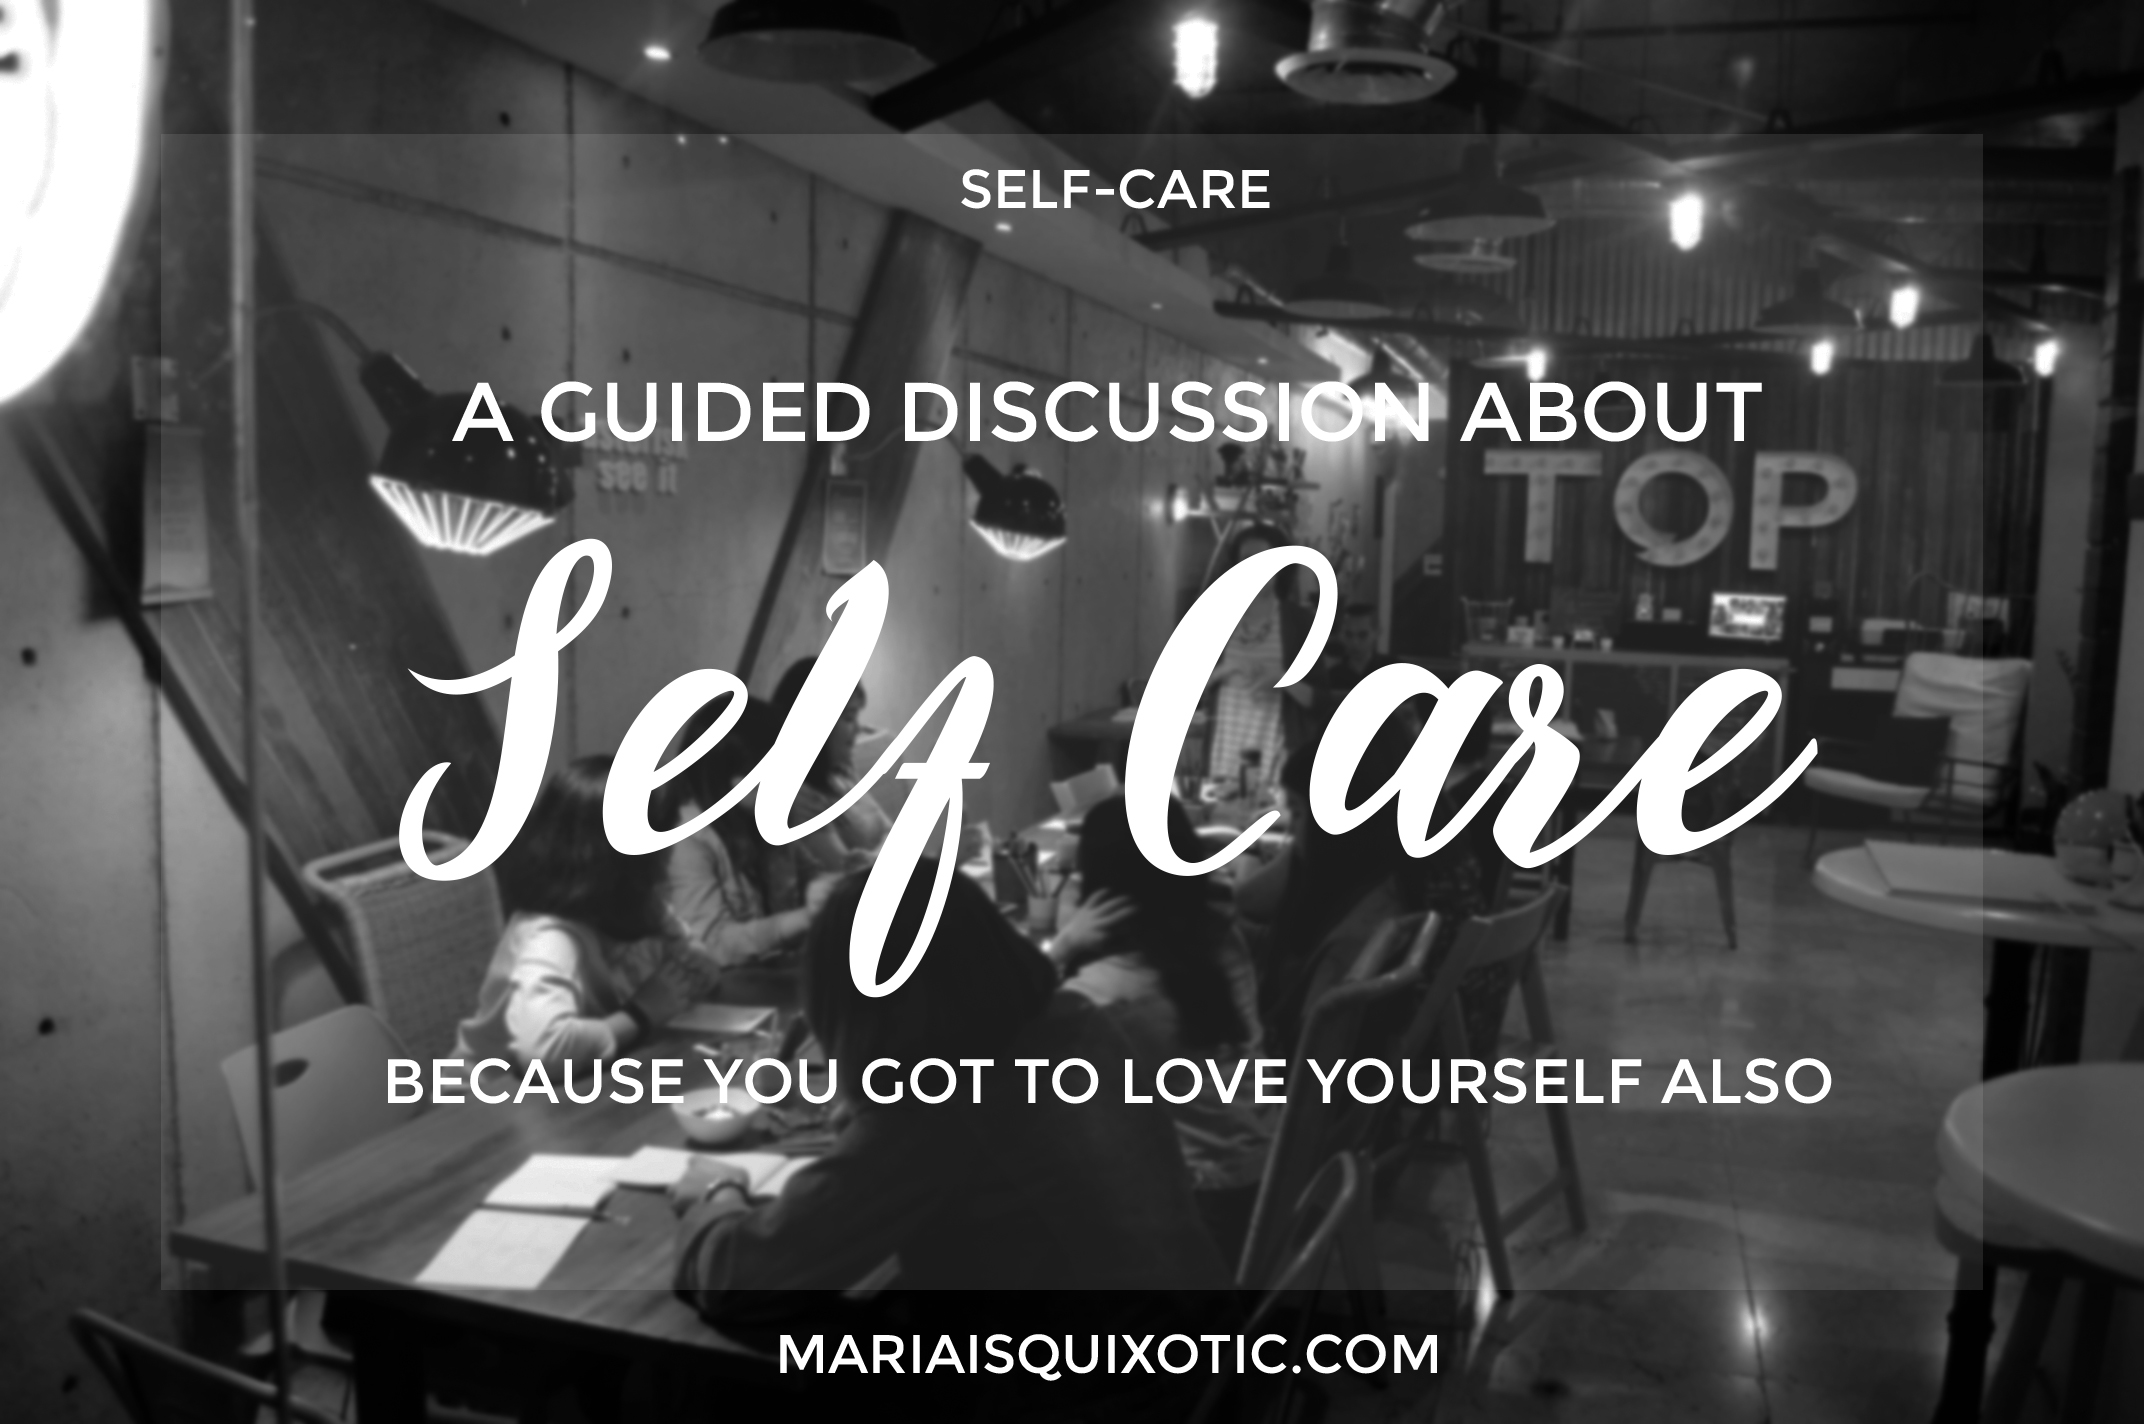 A Guided Discussion About Self-Care